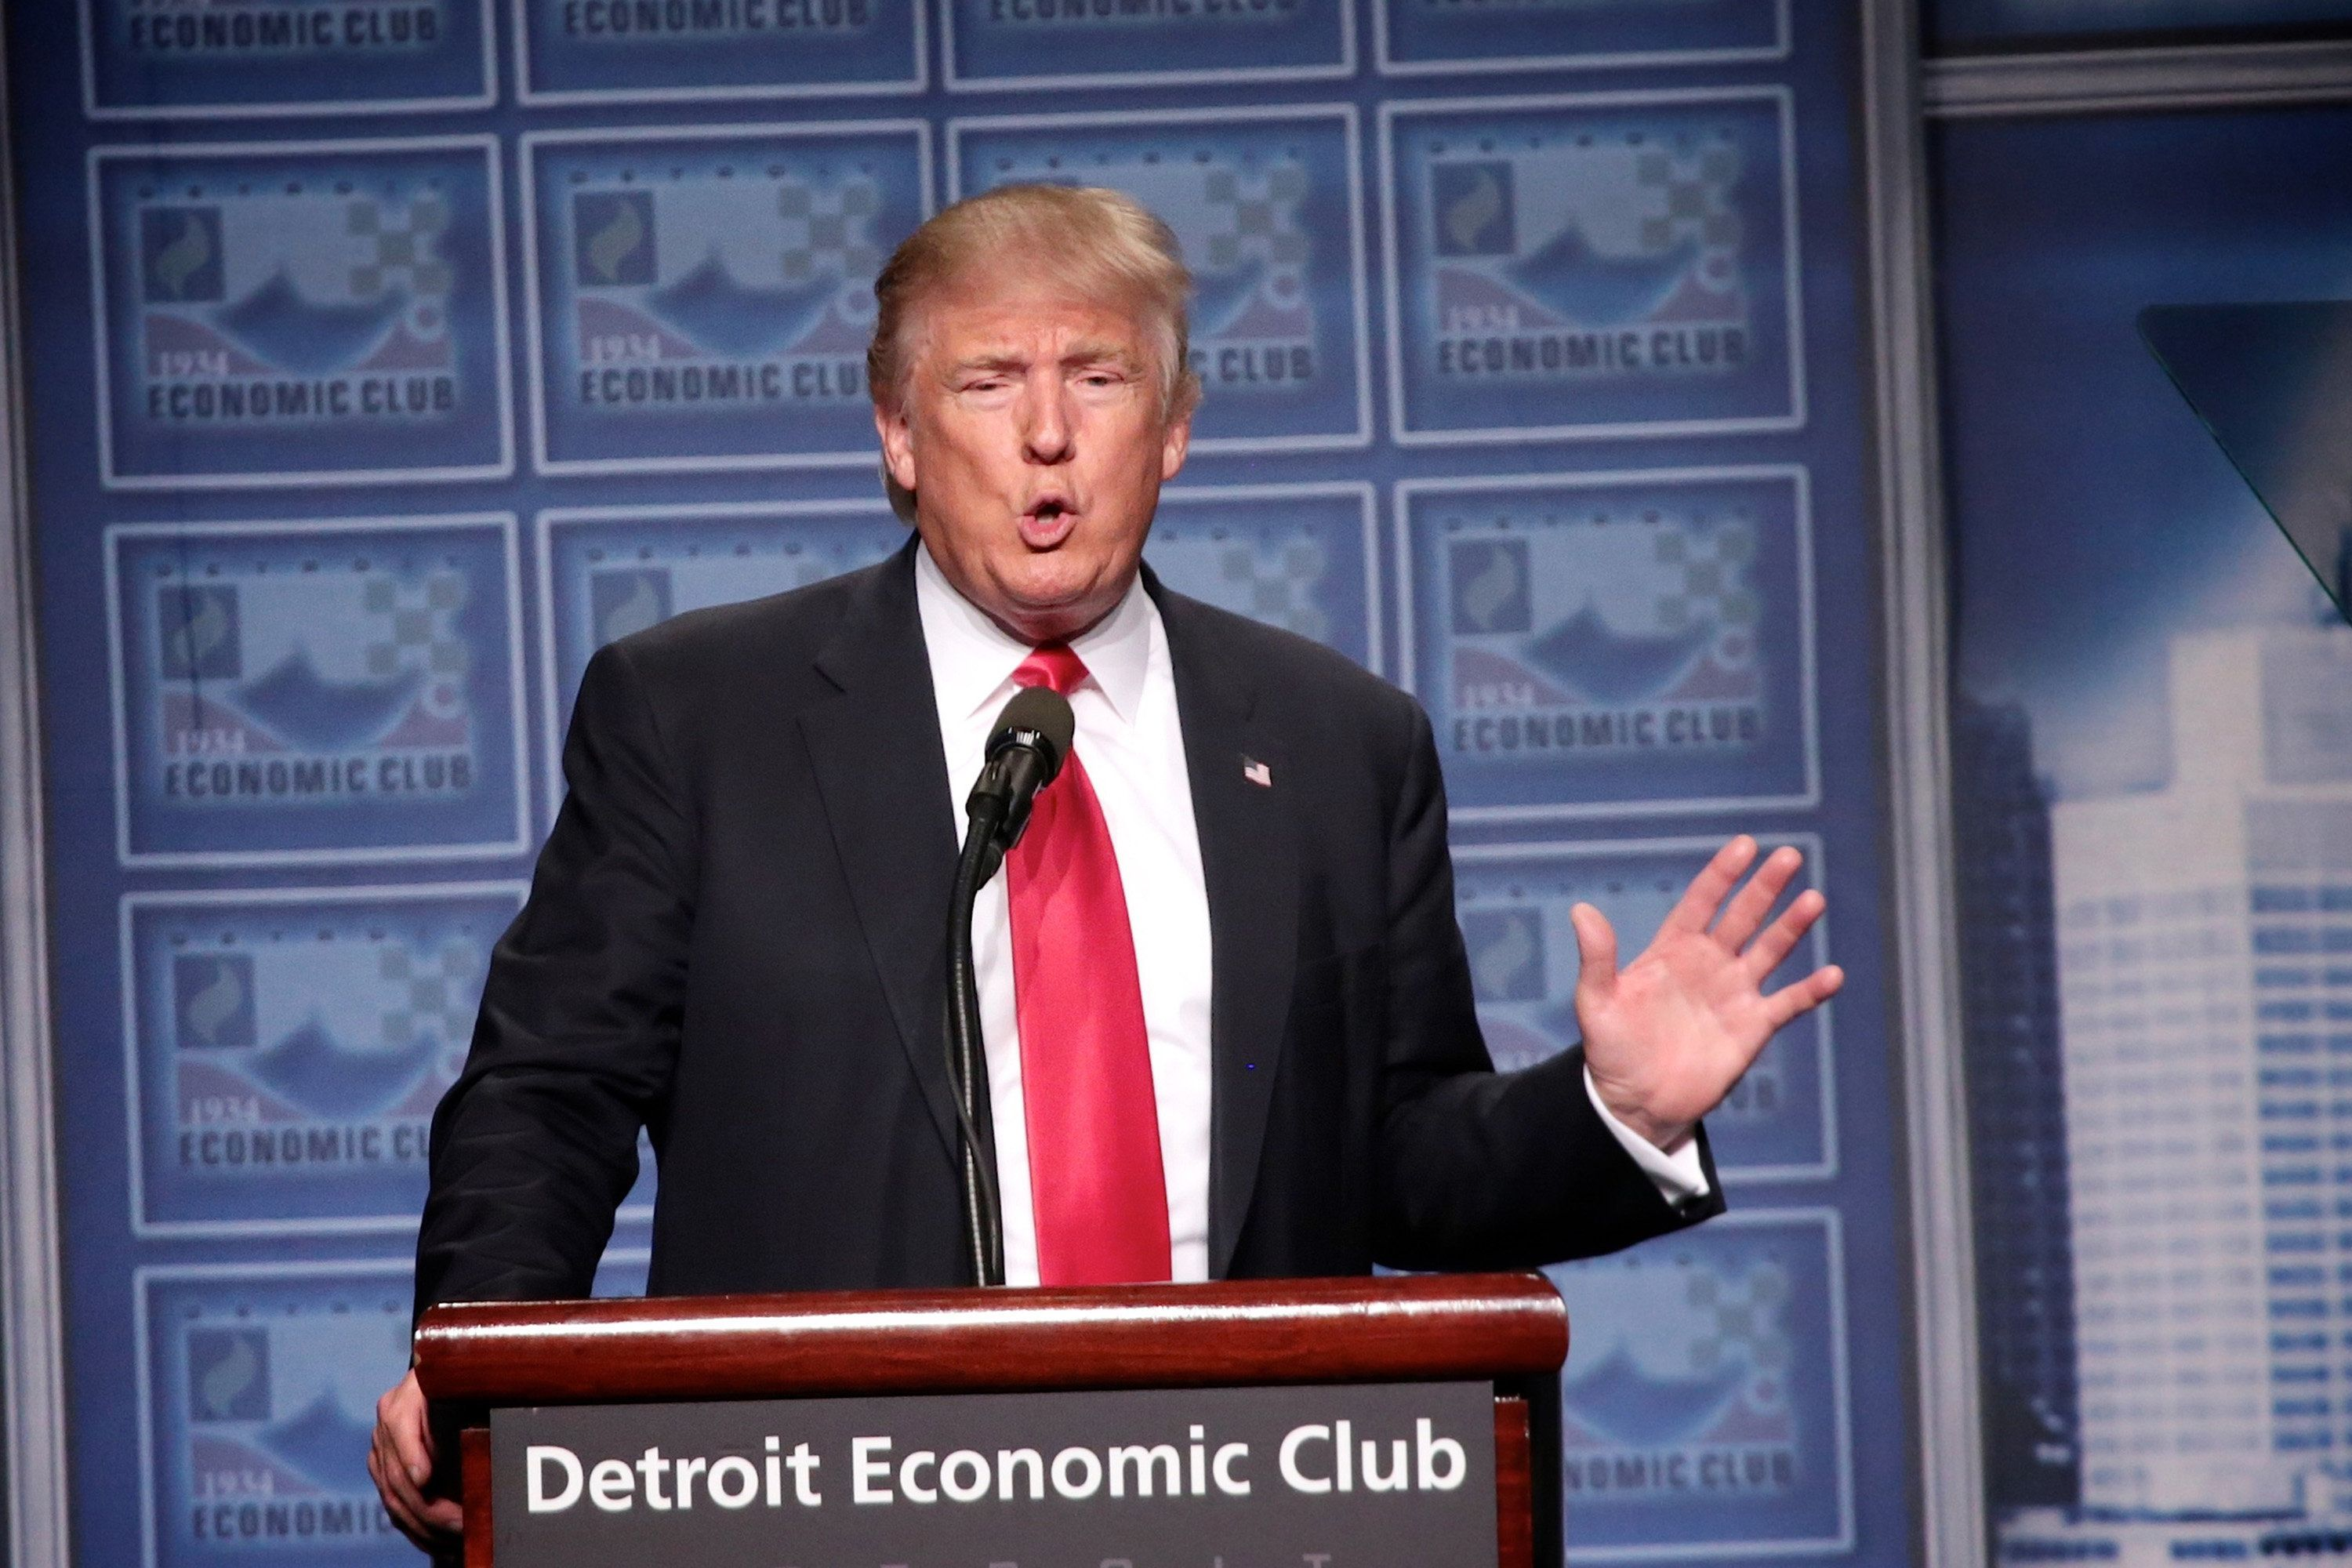 Republican nominee Donald Trump speaks to the Detroit Economic Club at Cobo Center on Monday Aug. 8, 2016 in downtown Detroit, Mich. (Salwan Georges/Detroit Free Press/TNS via Getty Images)